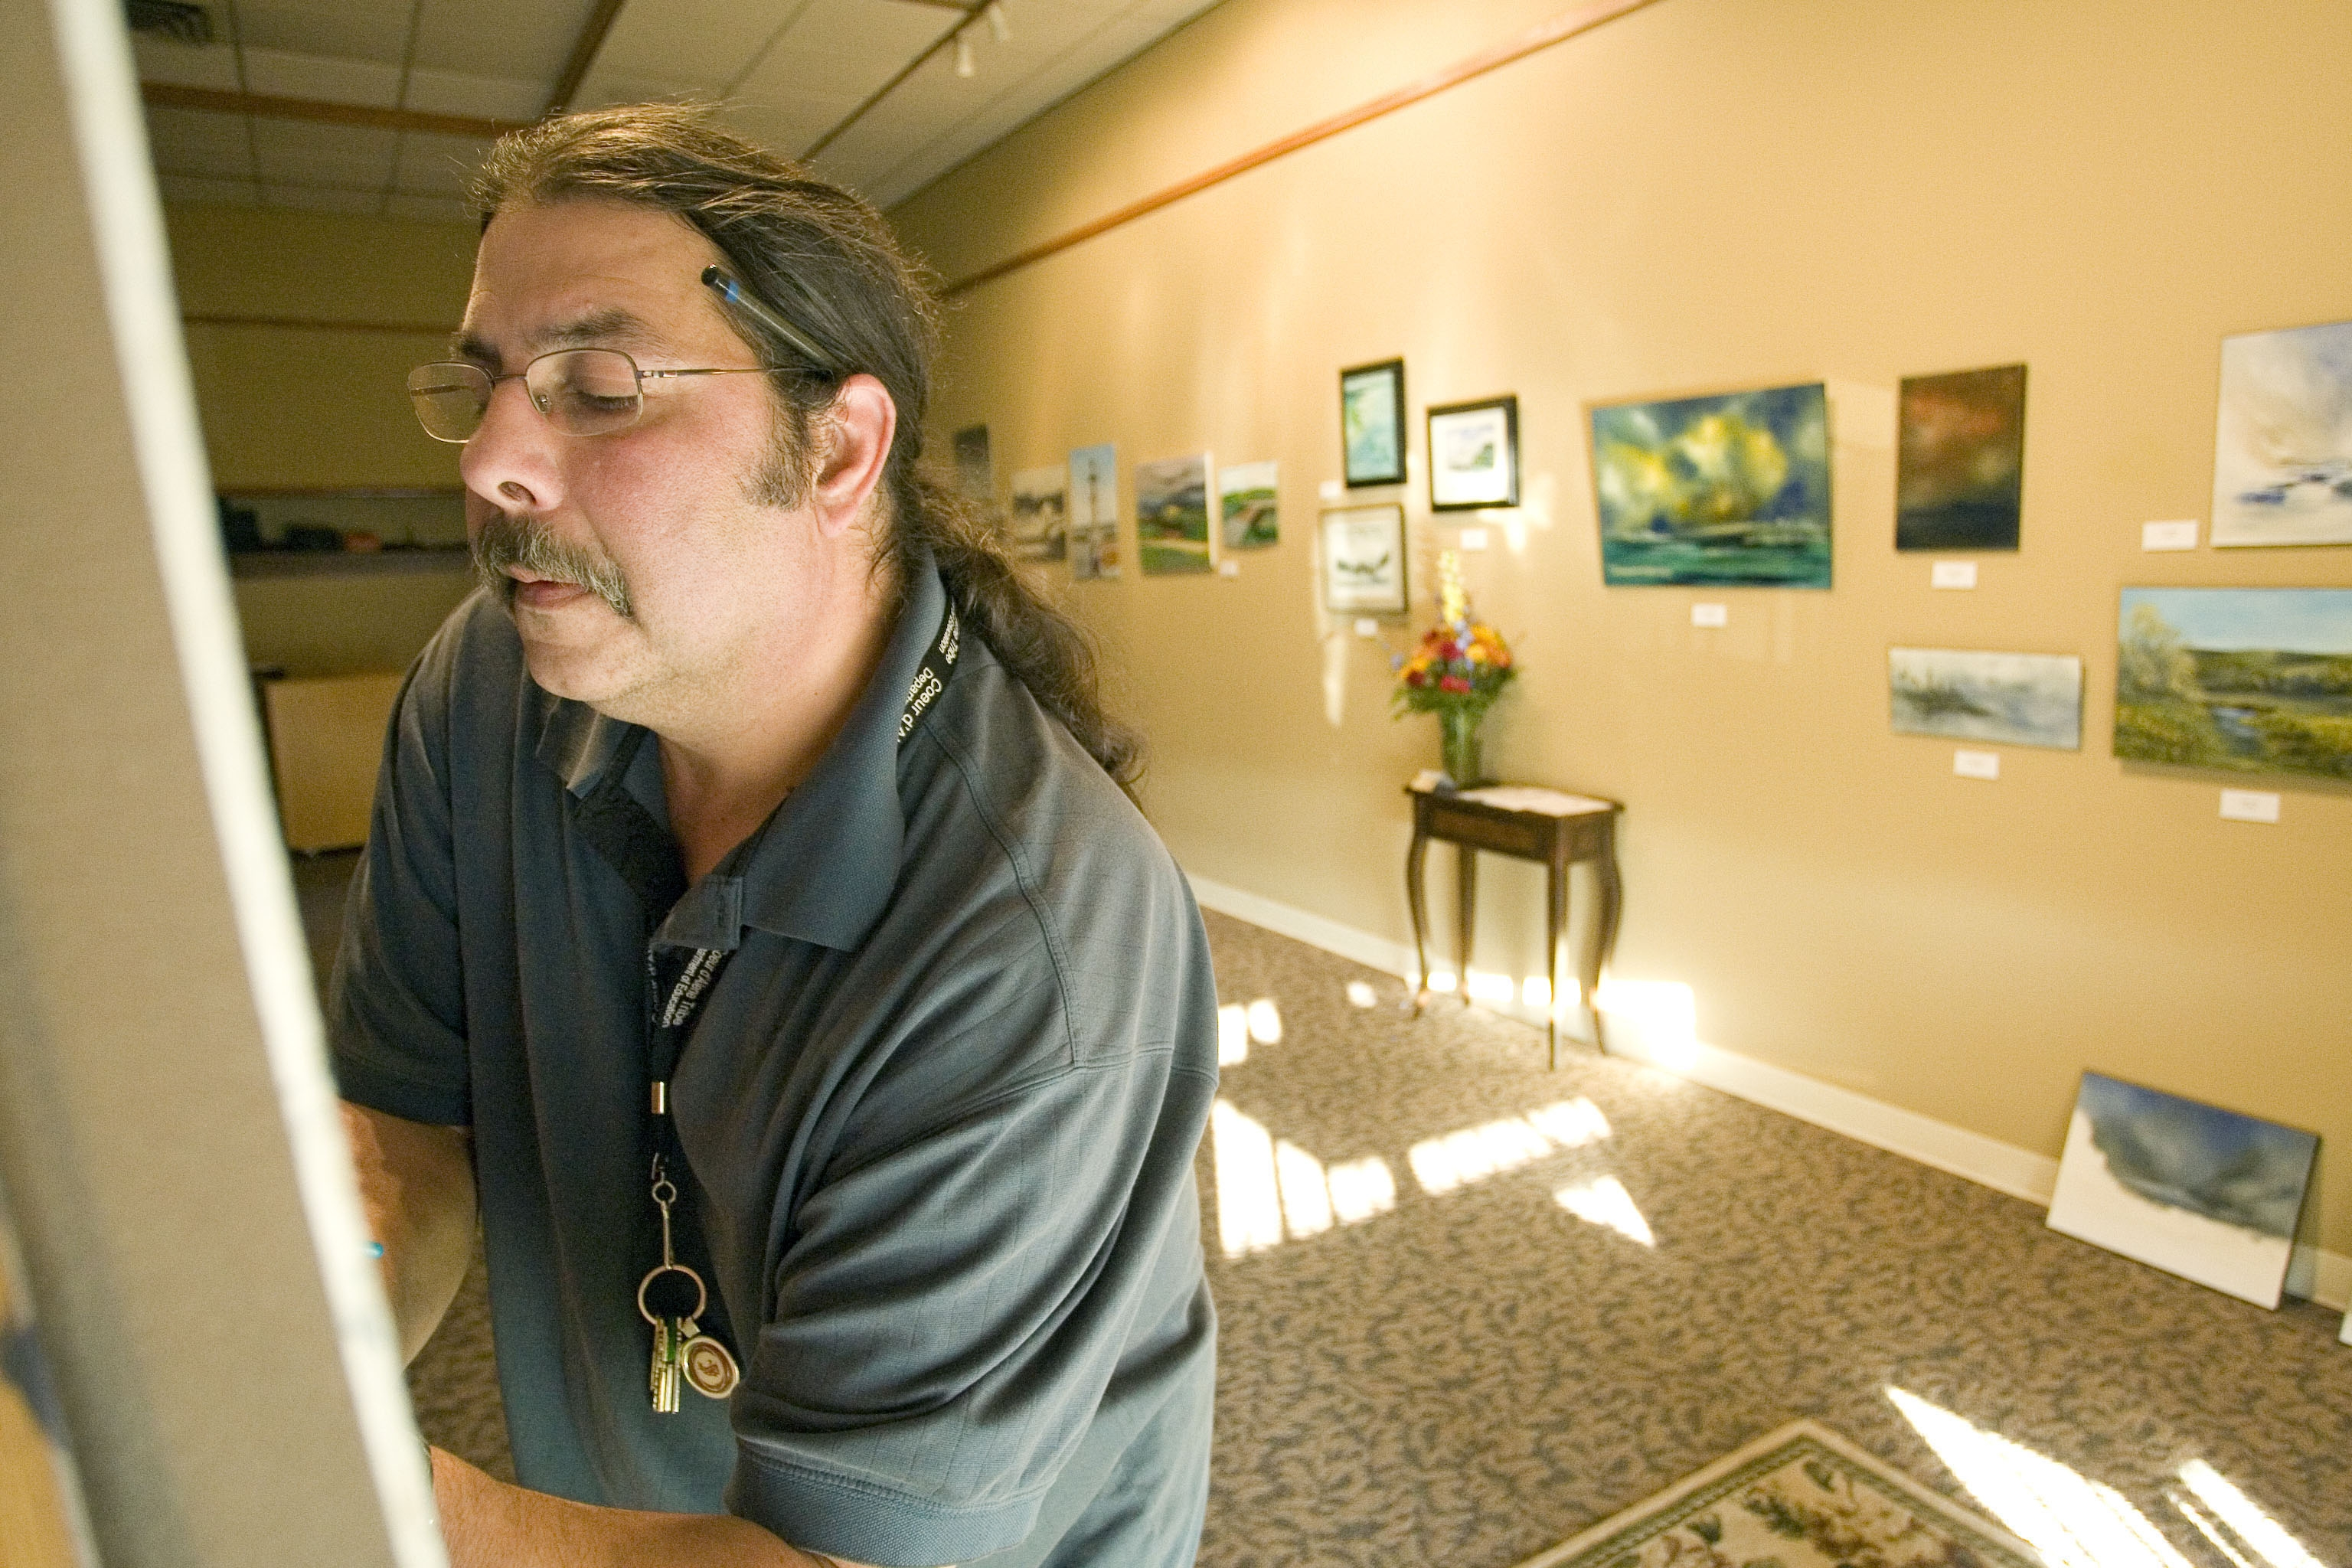 Pious paintings: Simpson United Methodist Church to host art shows